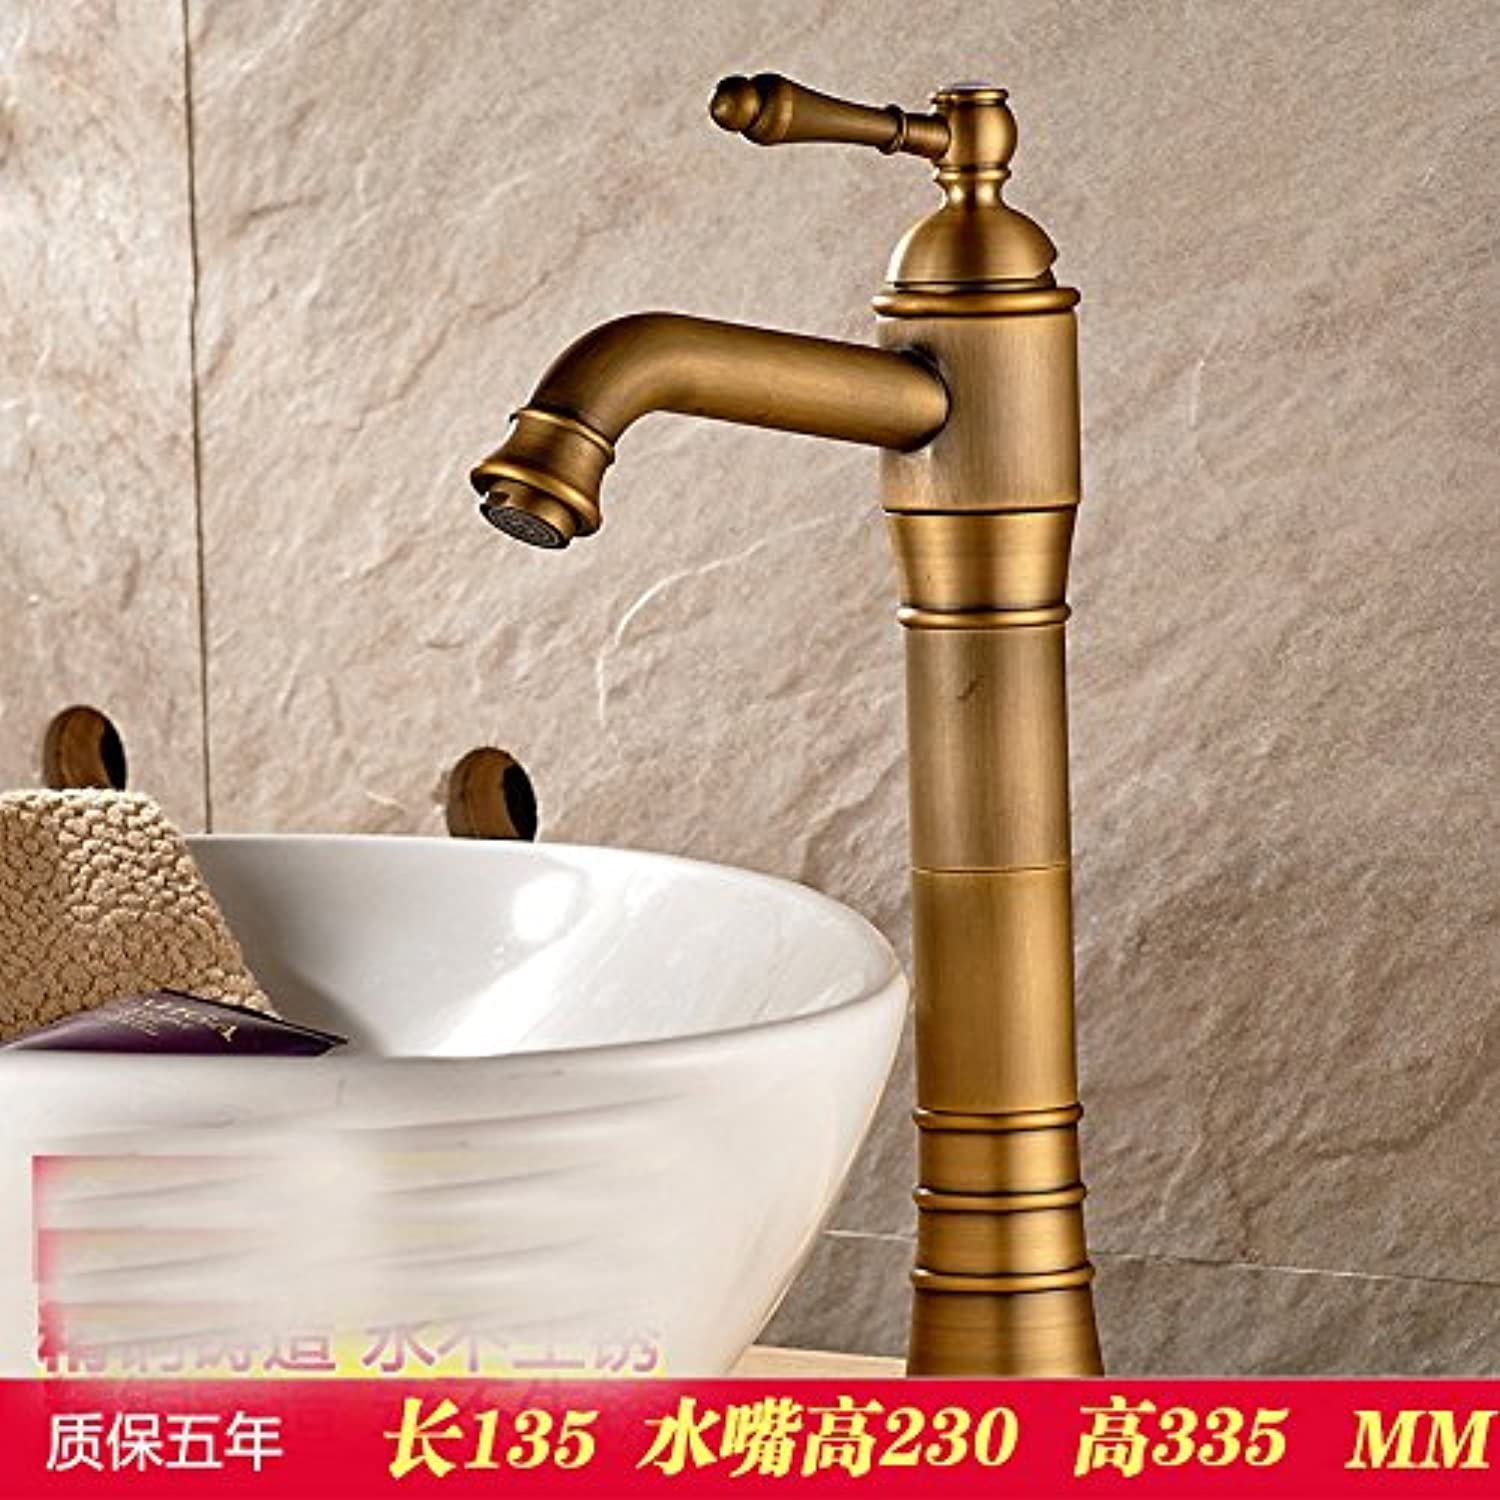 Hlluya Professional Sink Mixer Tap Kitchen Faucet Antique Basin Mixer Taps and cold water faucet, gold